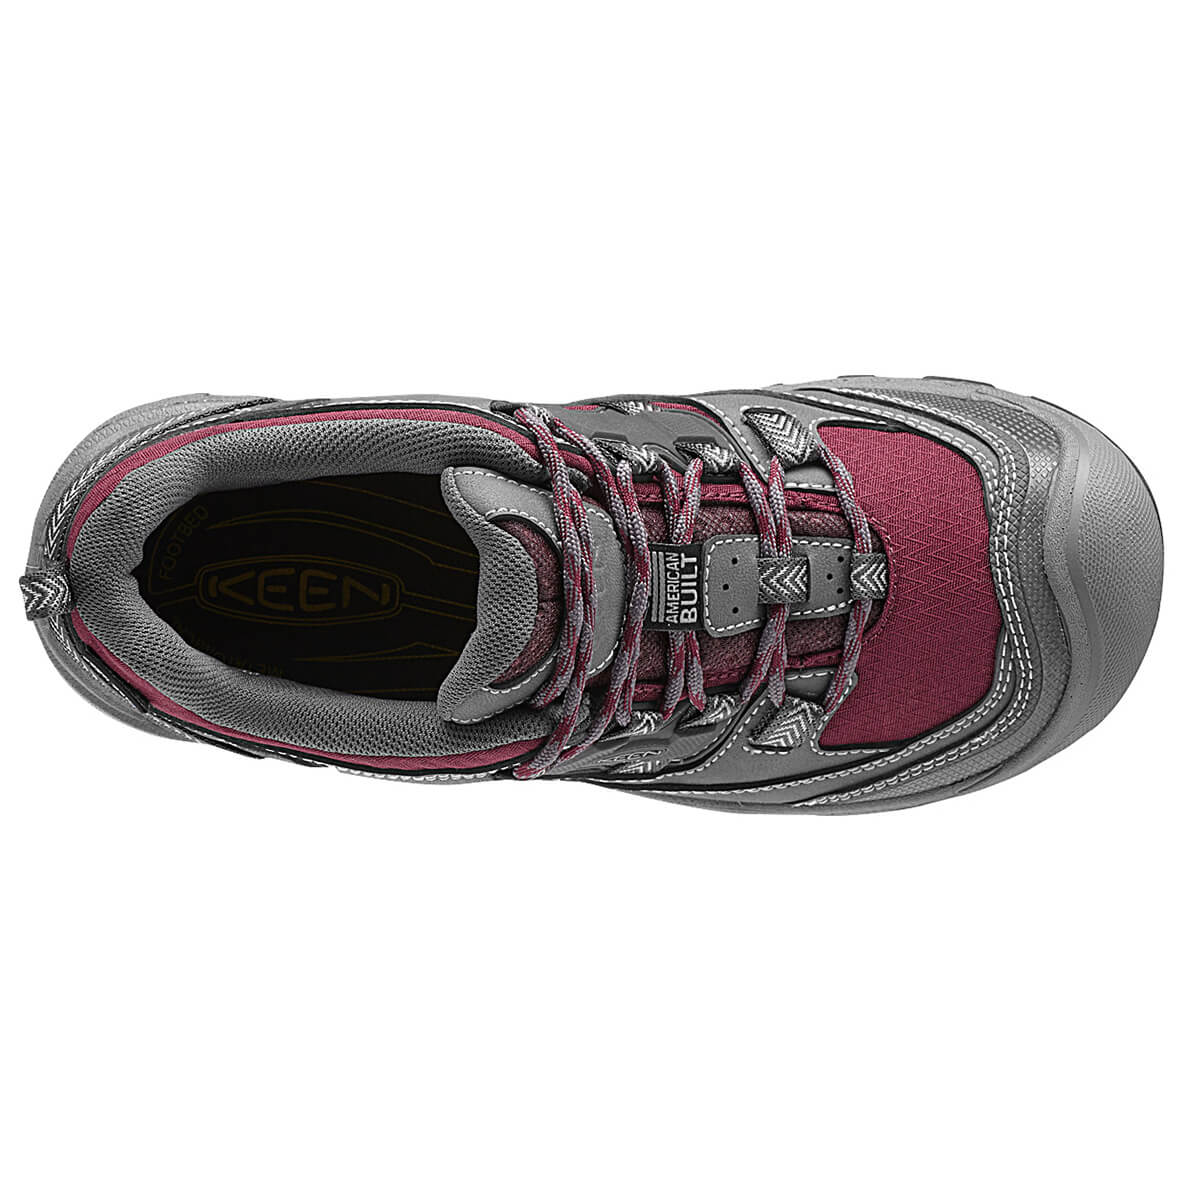 keen shoes and how to order on line